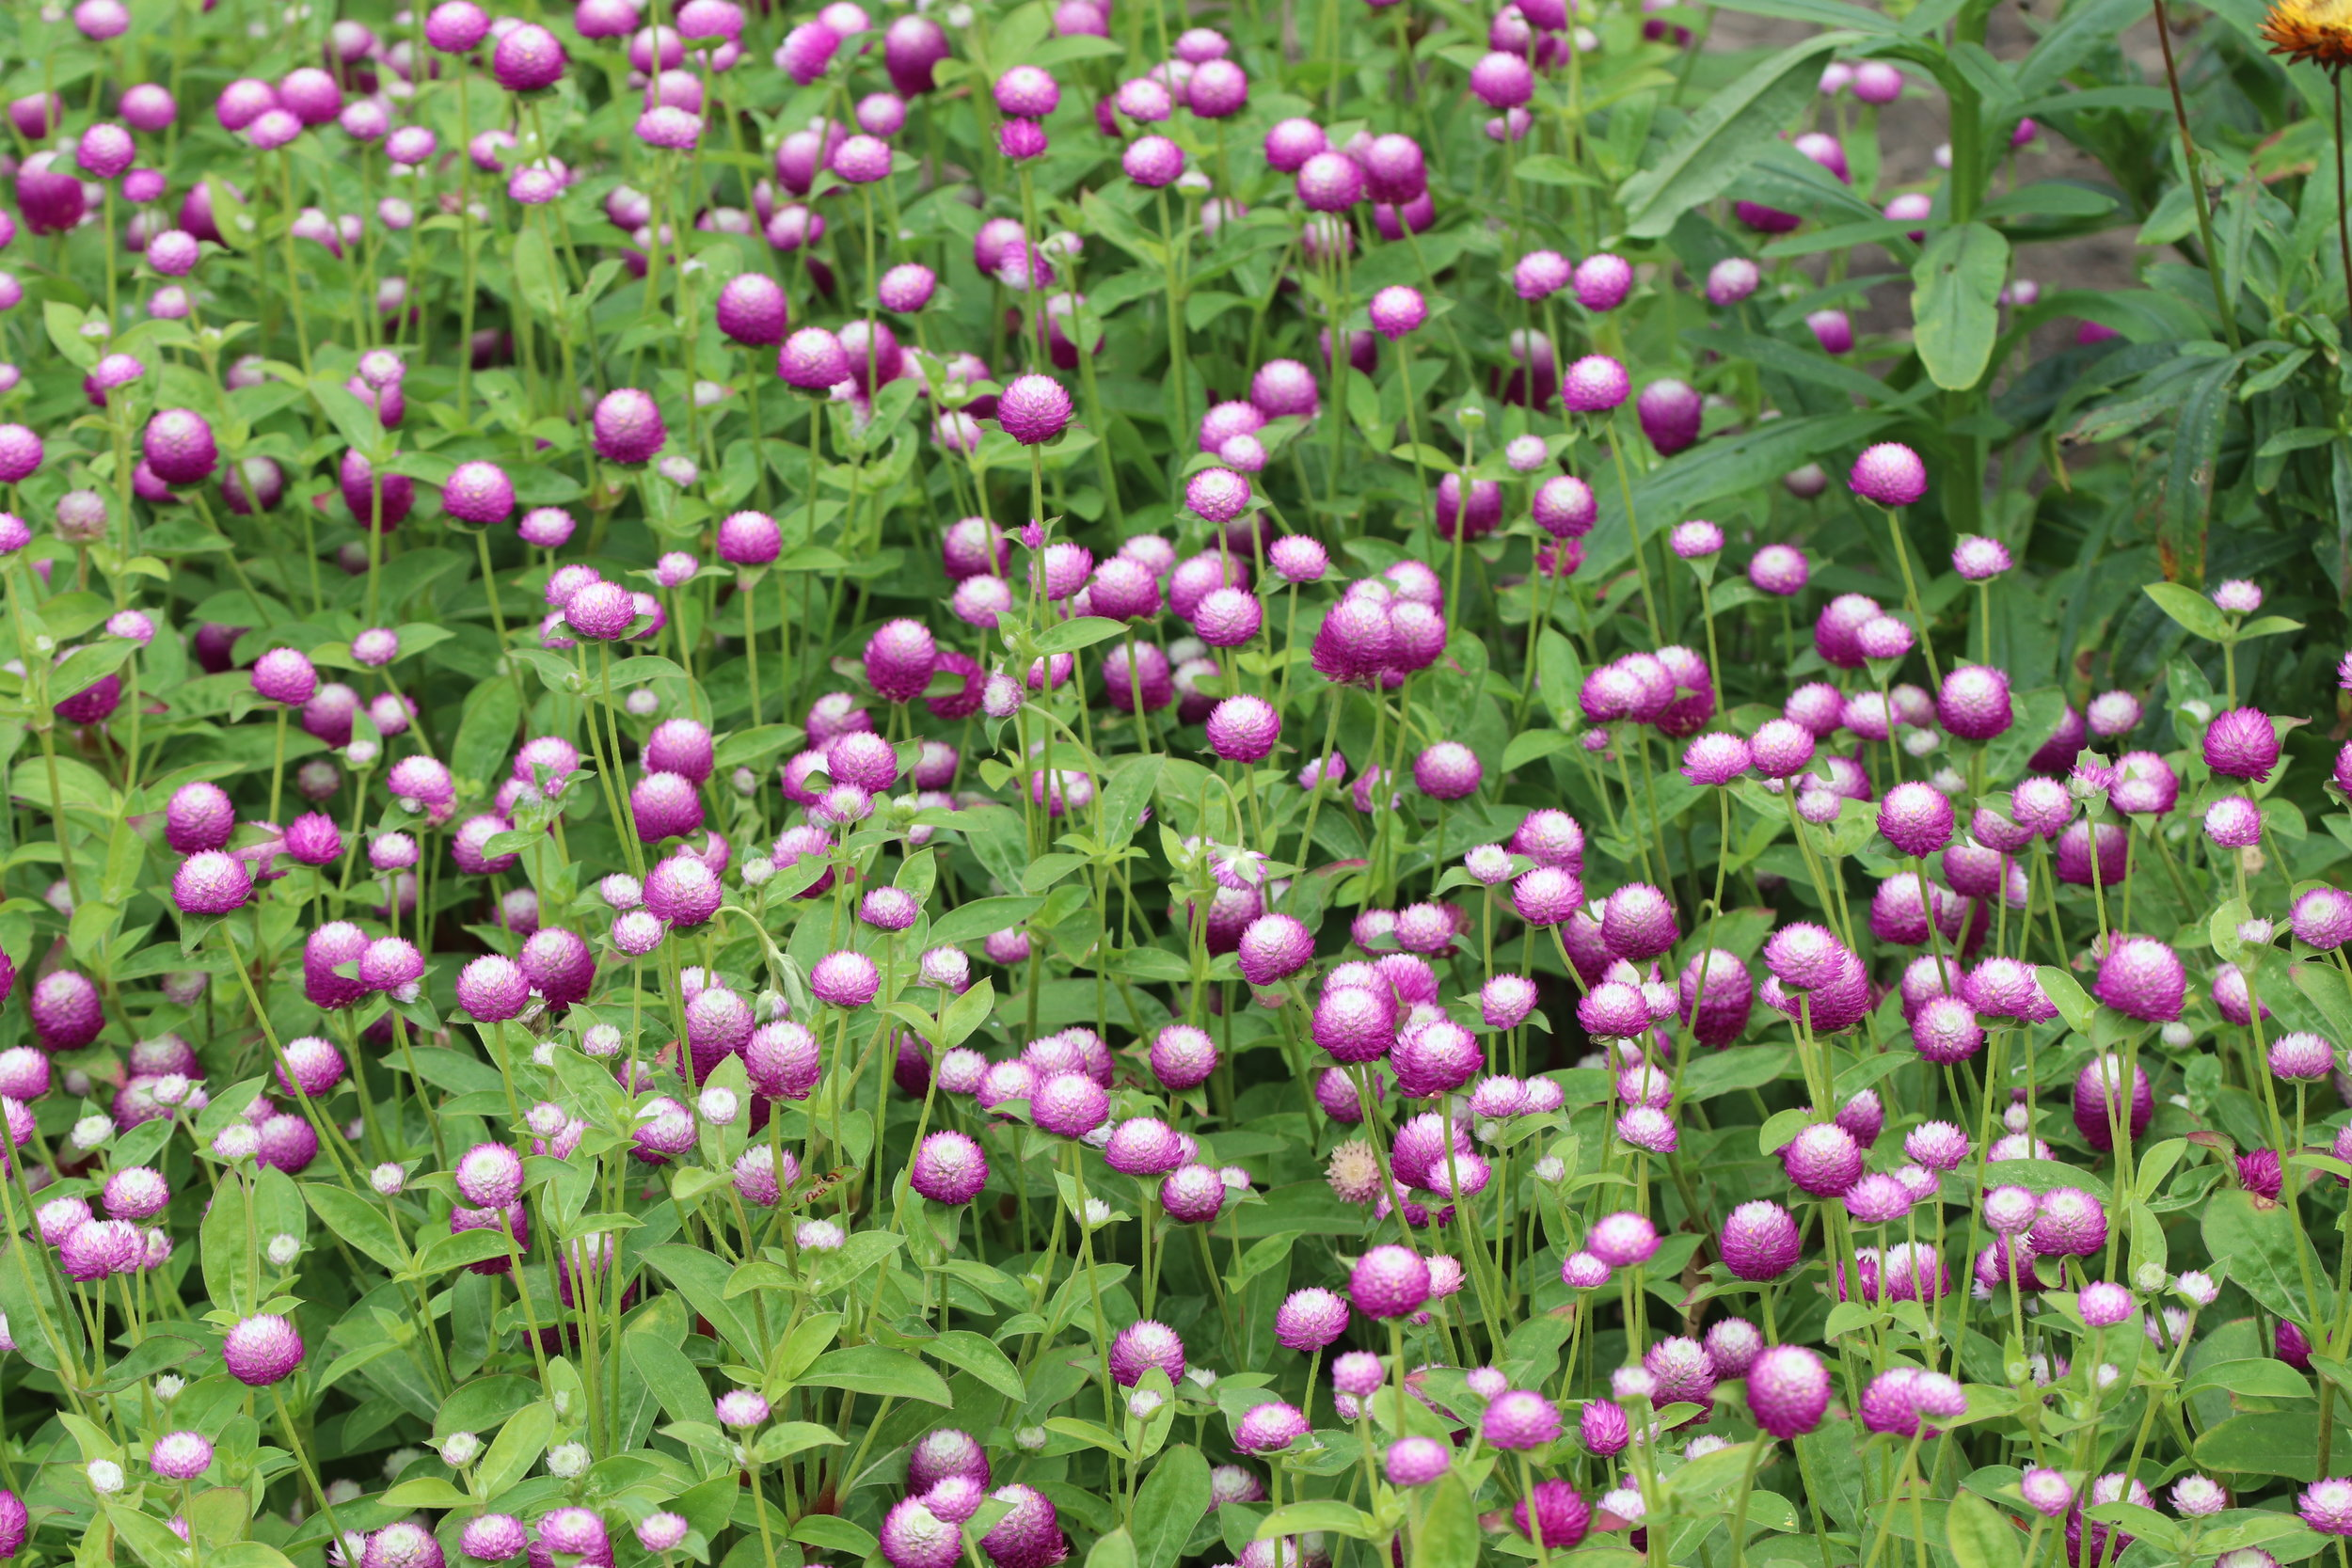 Globe amaranth, gomphrena bicolor rose, planted in a massing in our orchard, was one of the highlights of my flower garden in 2018.